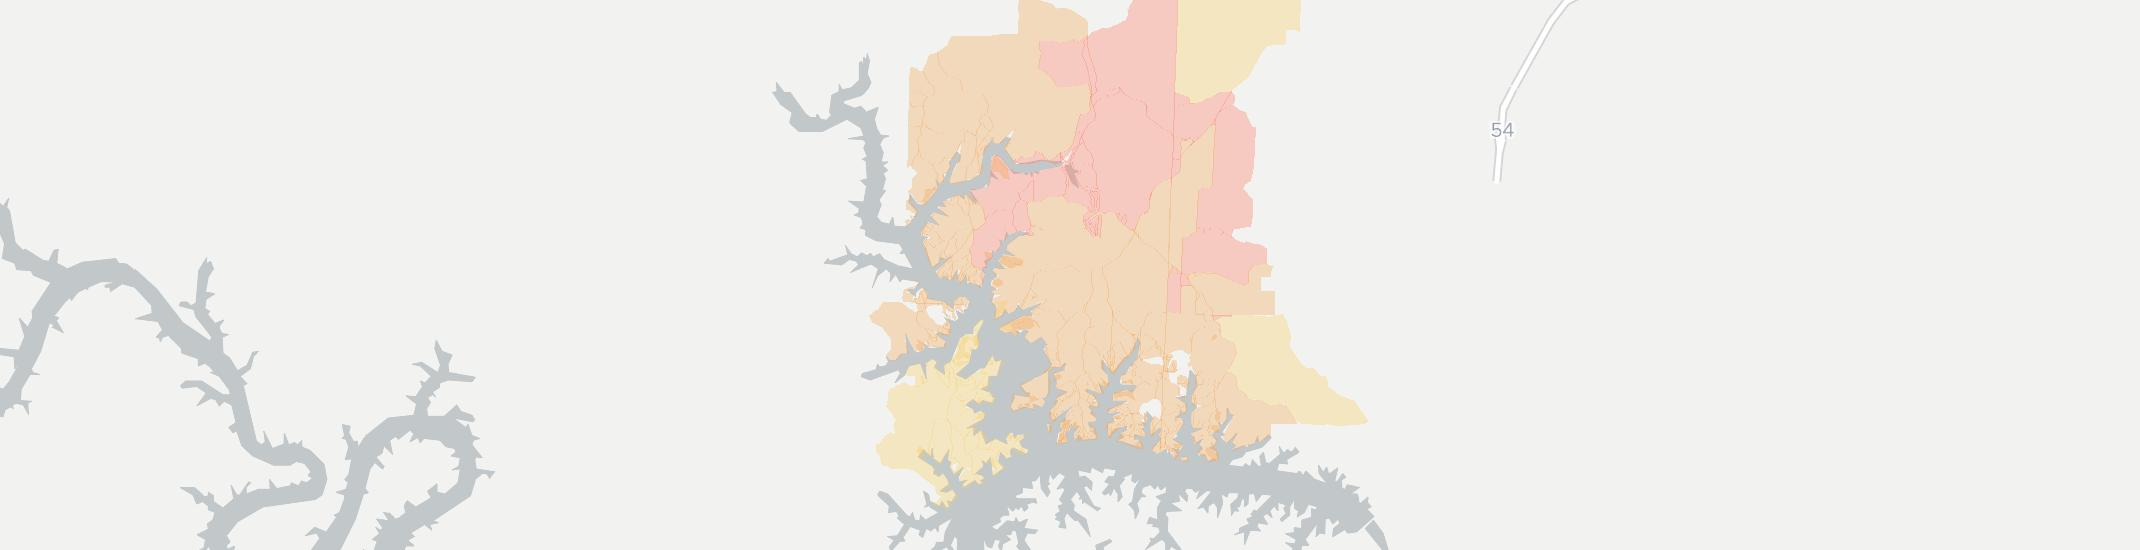 Rocky Mount Internet Competition Map. Click for interactive map.